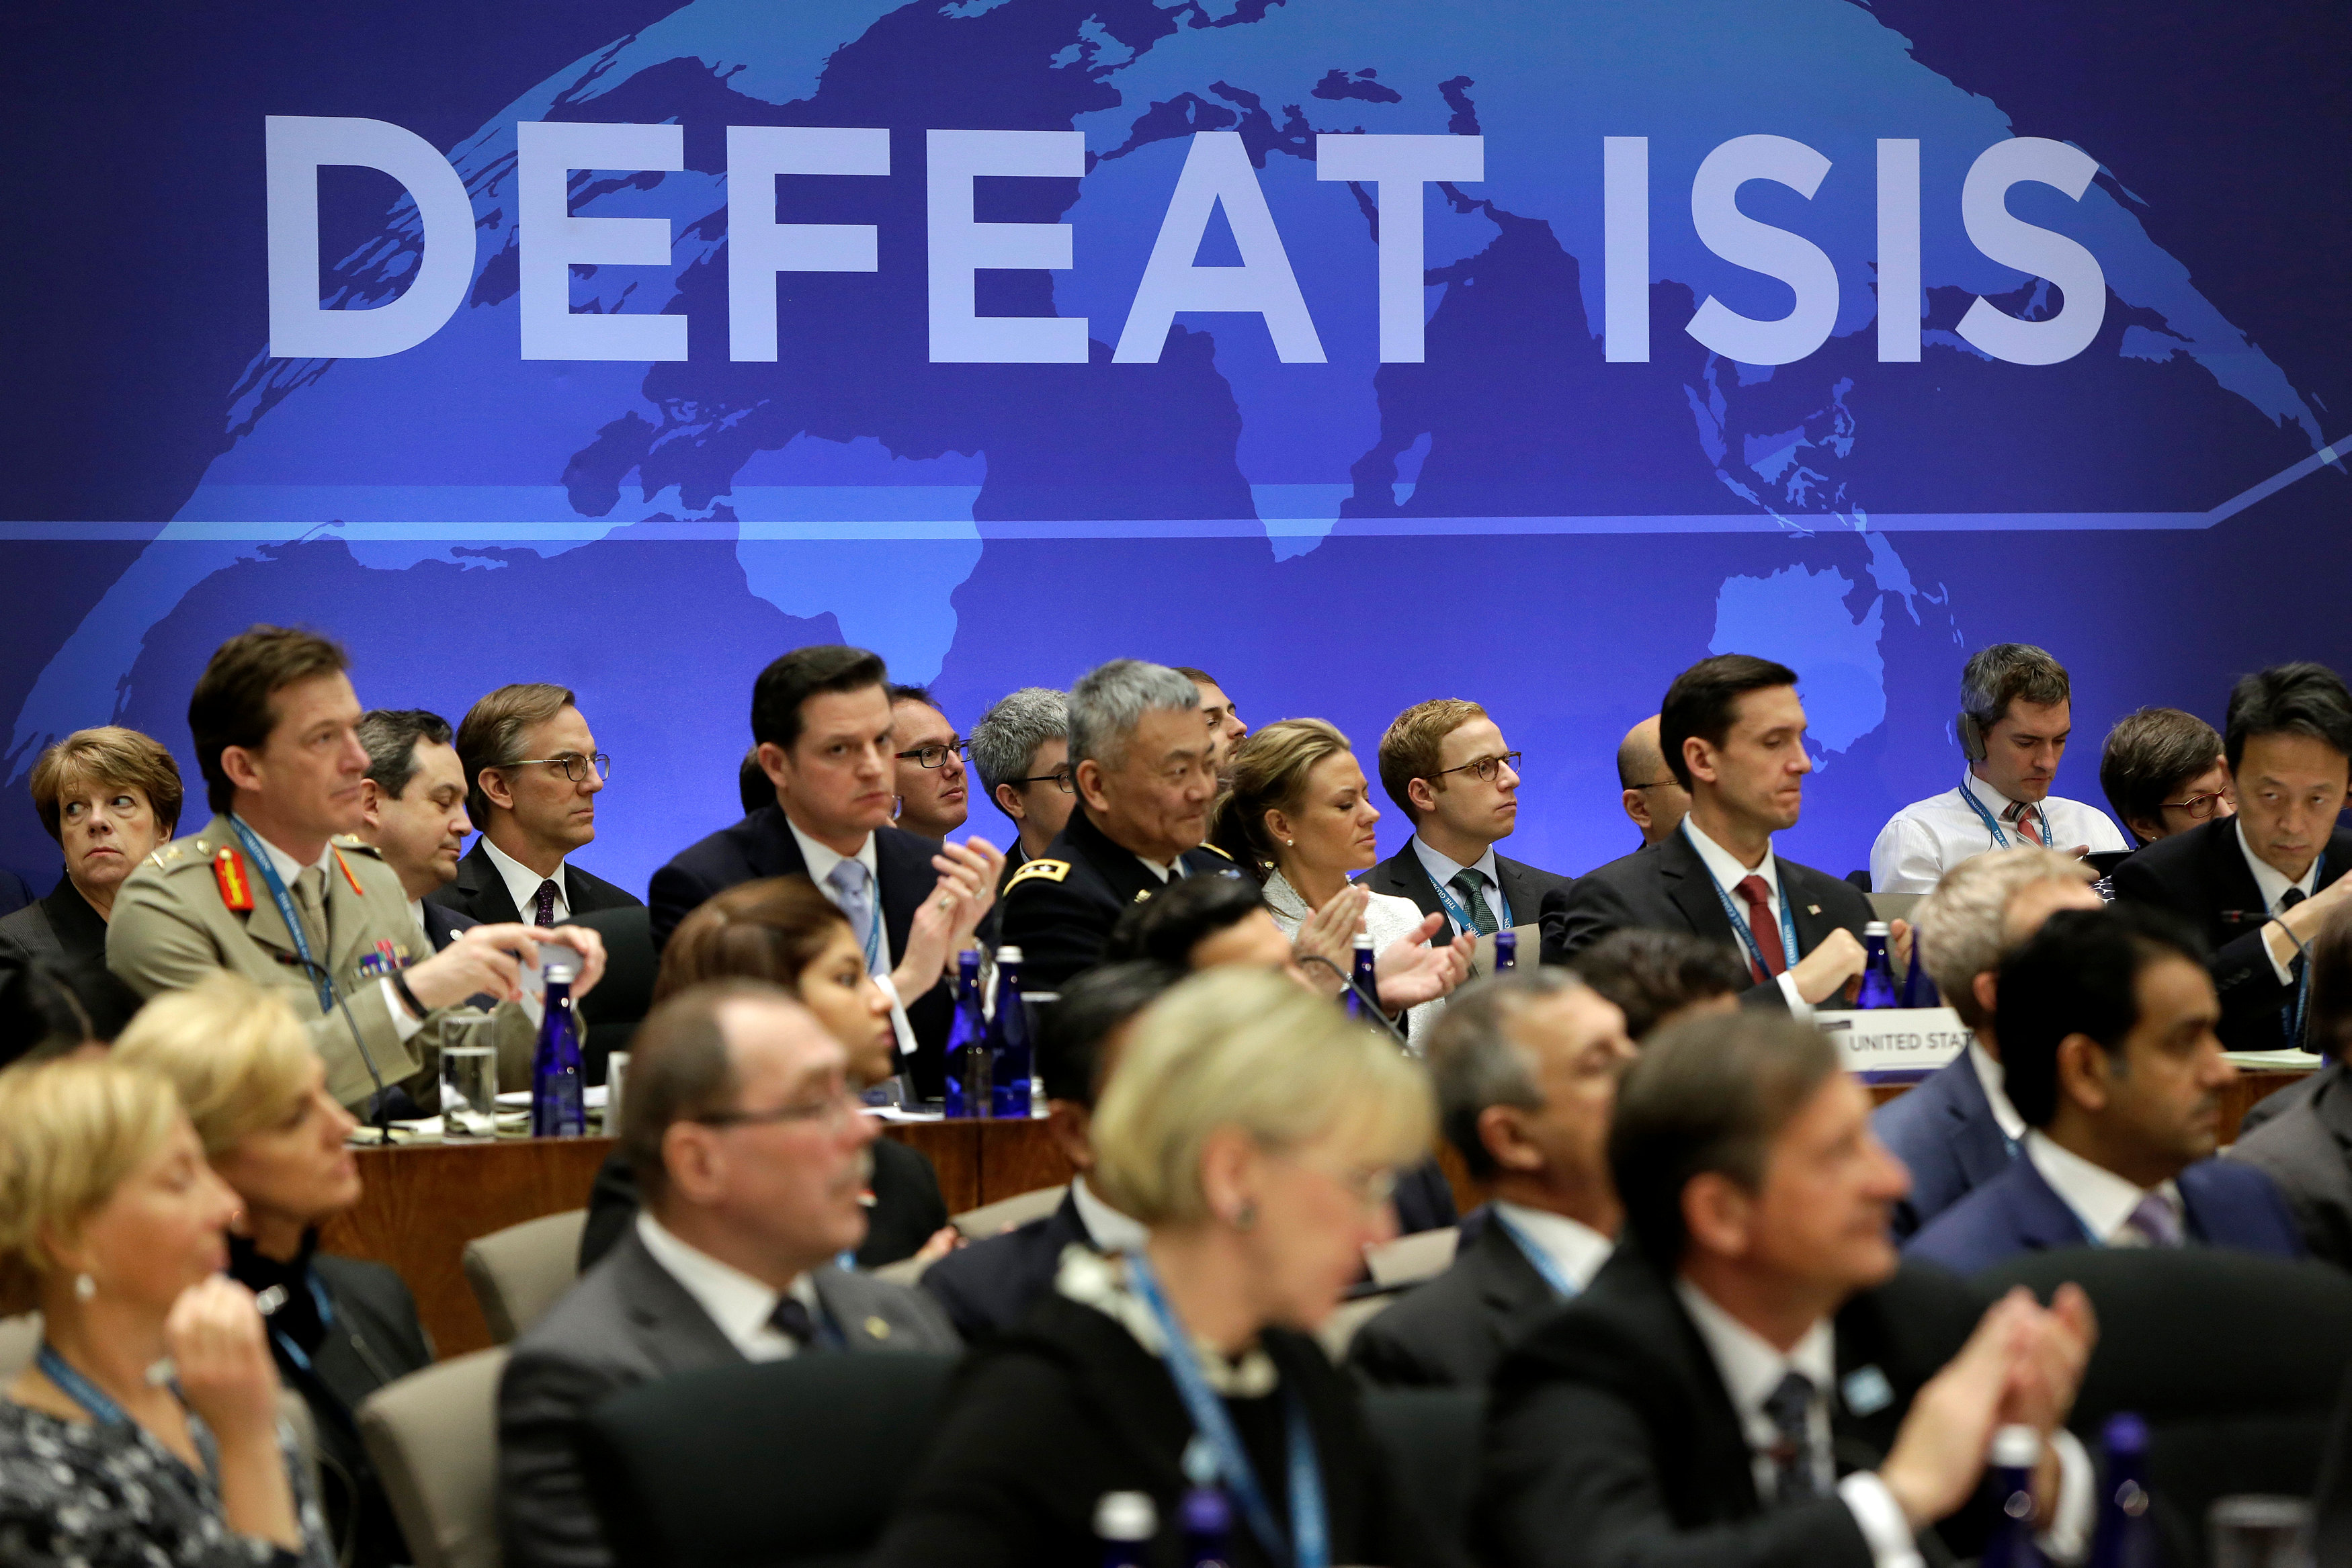 Delegates applaud after remarks at the morning ministerial plenary for the Global Coalition working to Defeat ISIS at the State Department in Washington, U.S. on March 22, 2017. (REUTERS/Joshua Roberts)